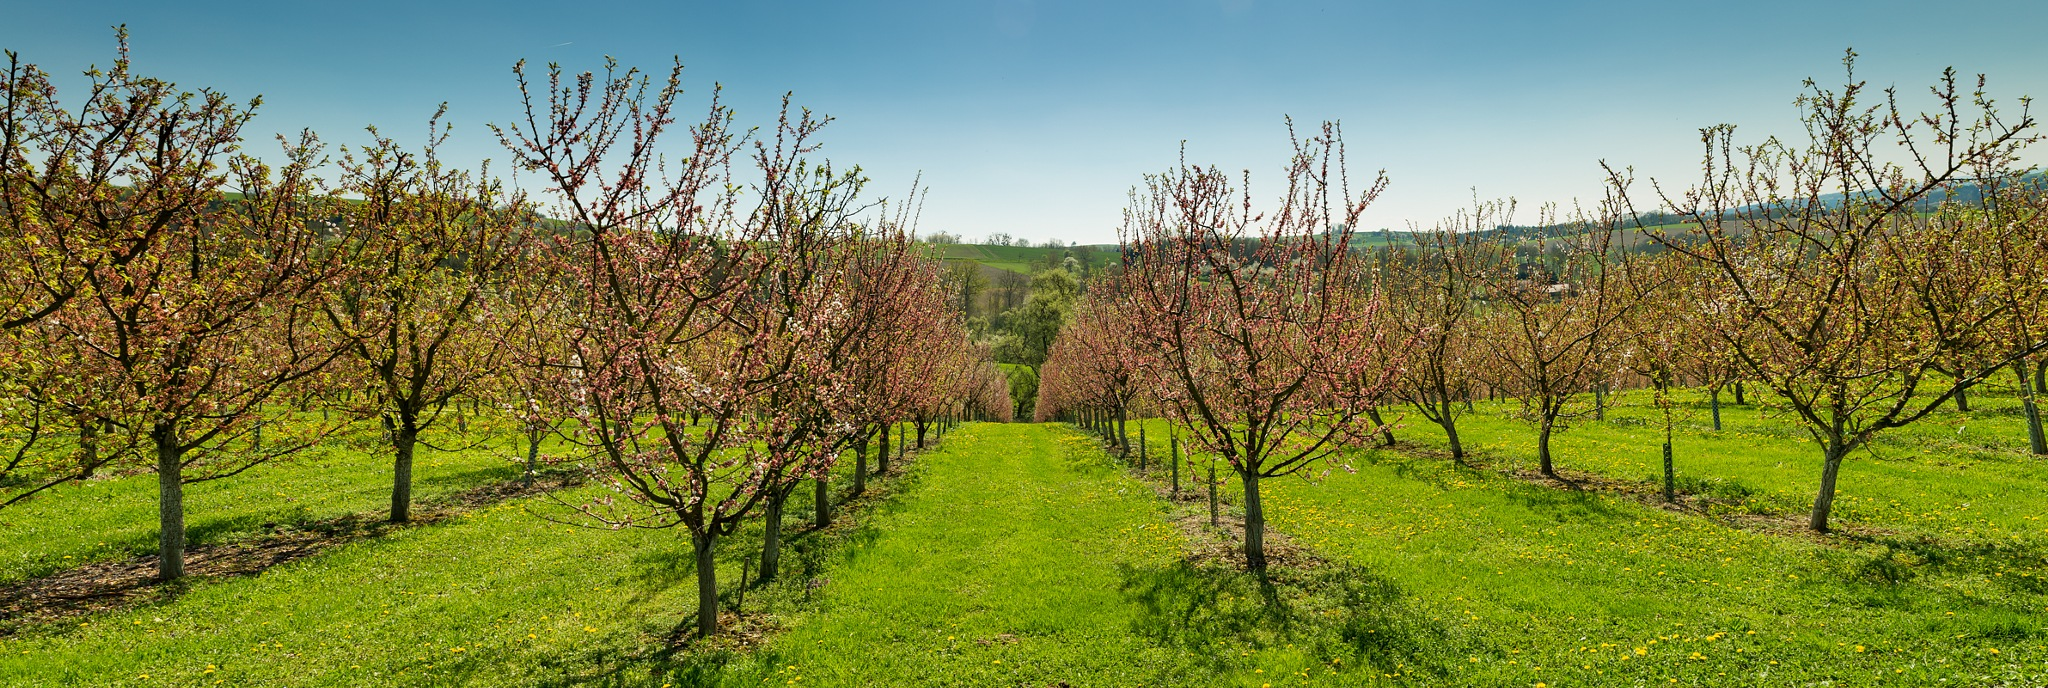 Cherry Trees by Walter Quirtmair